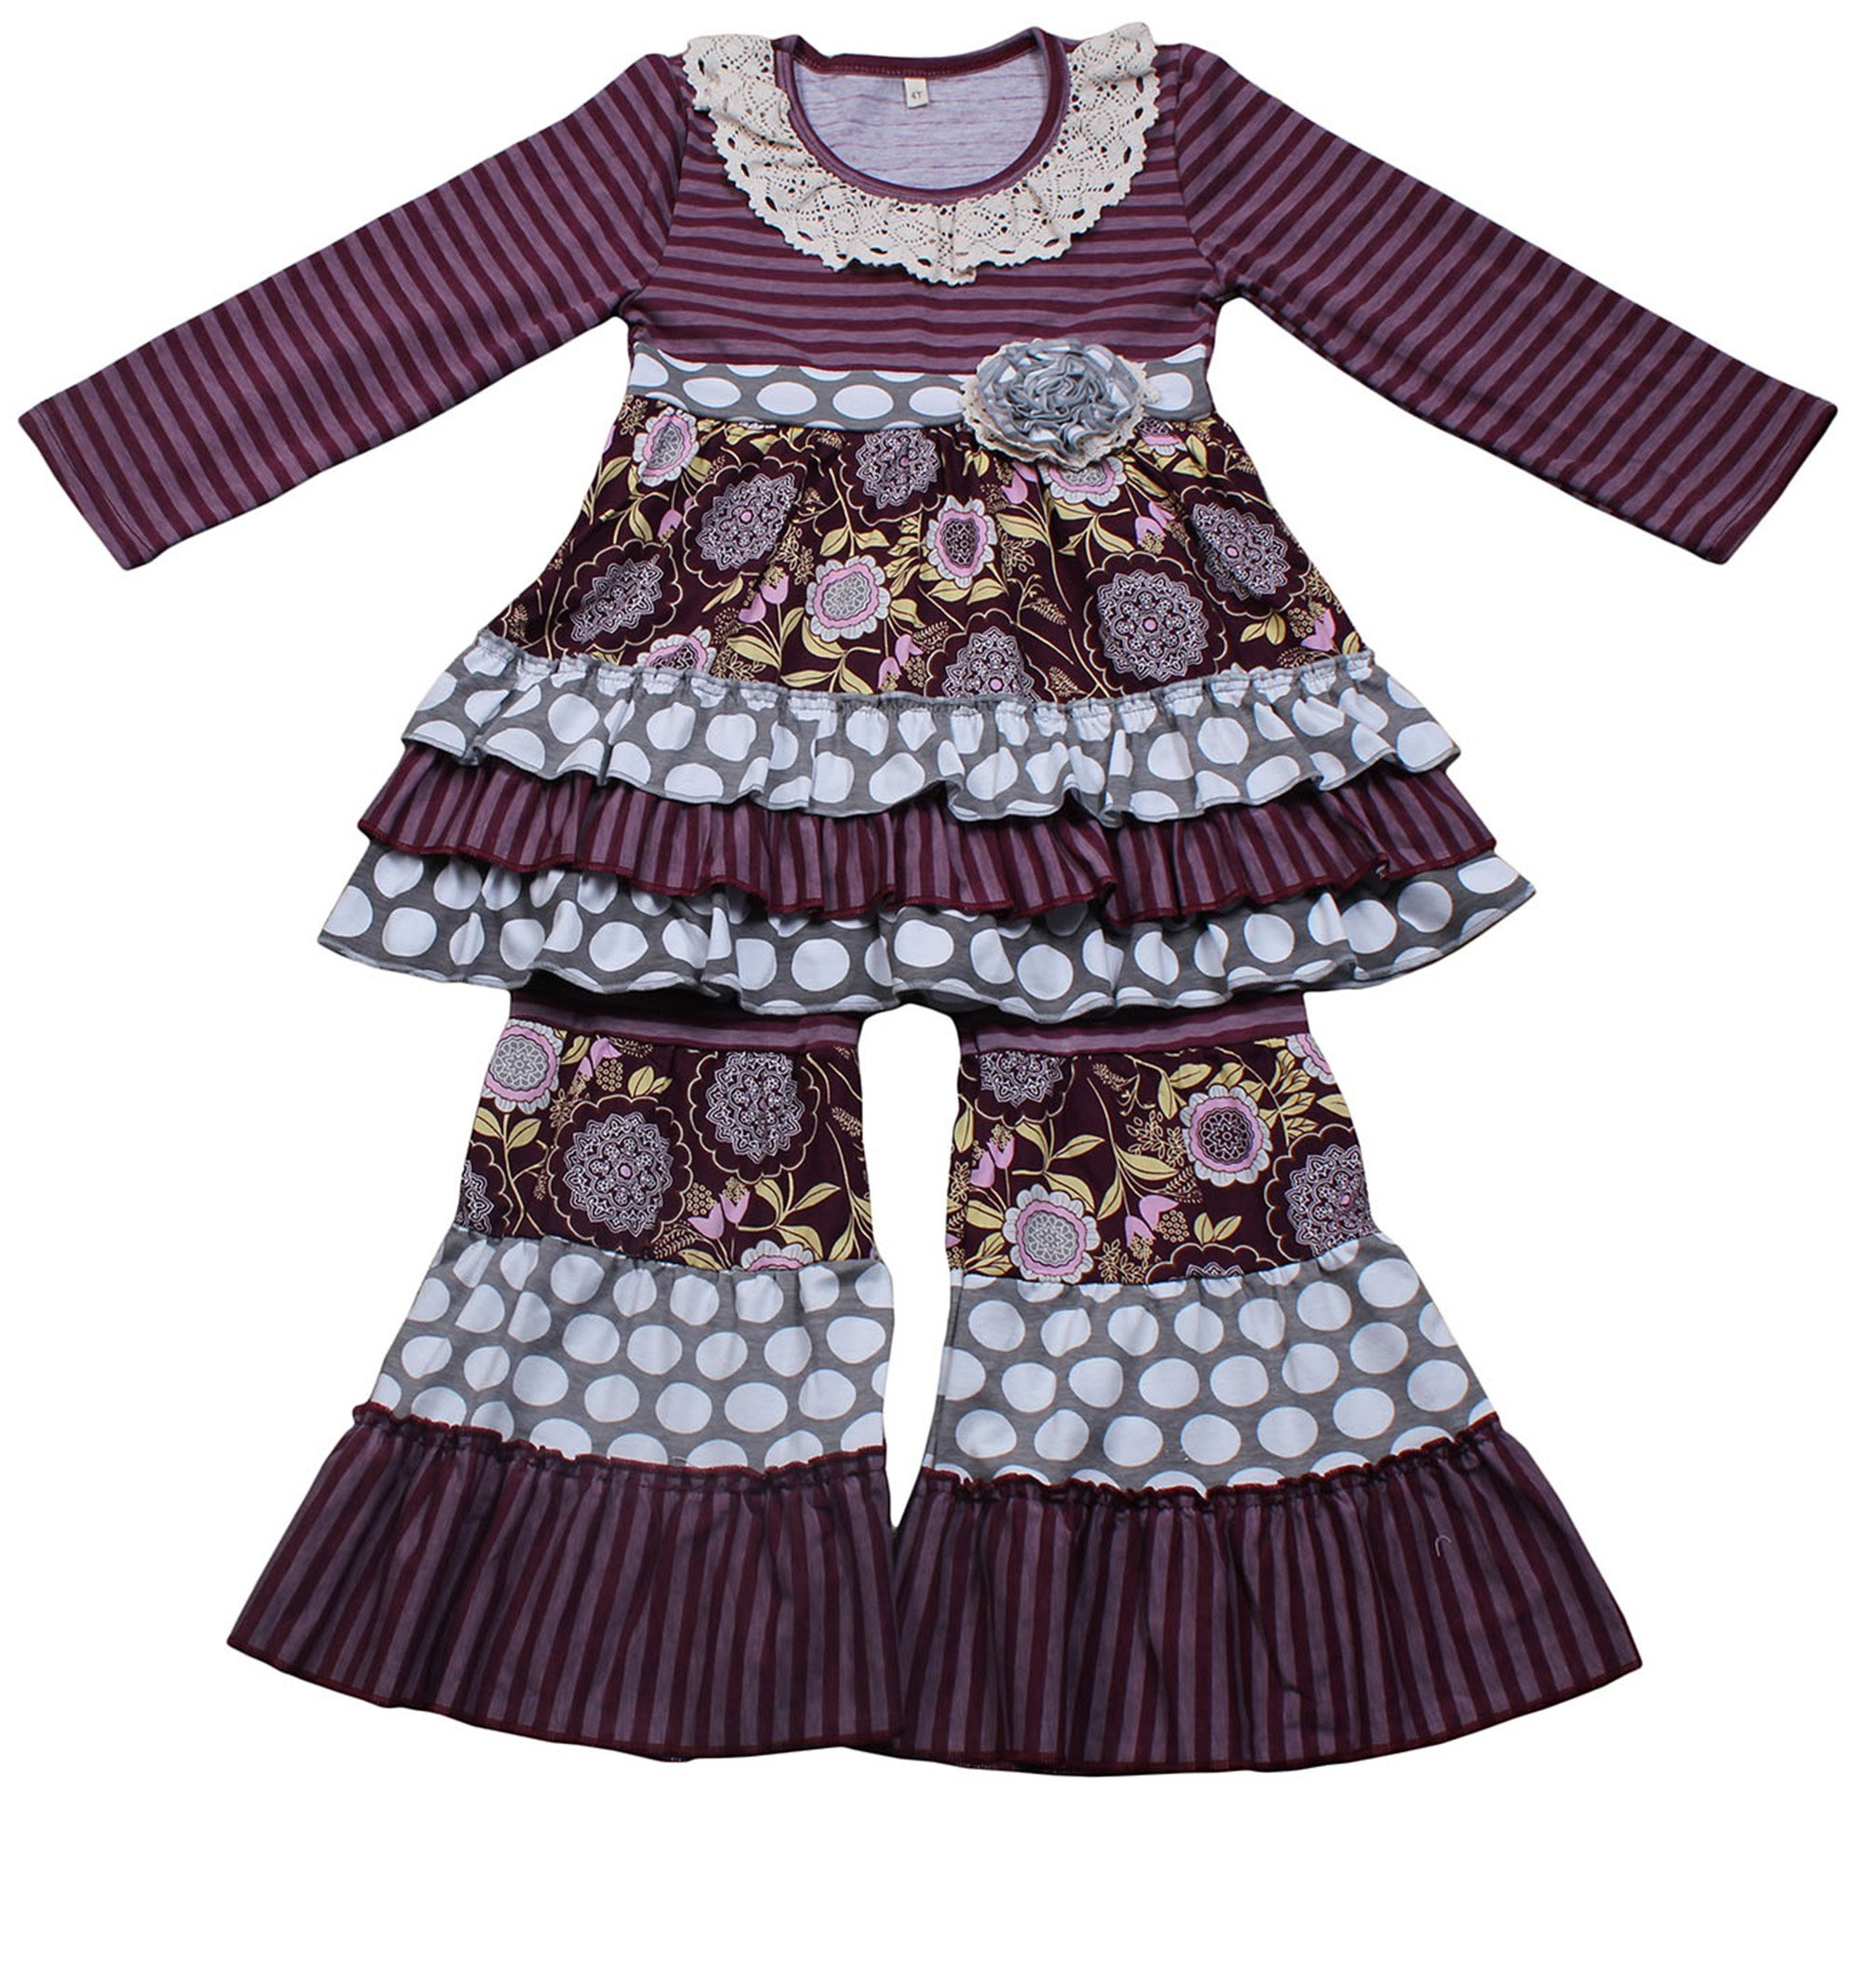 Yawoo Haan Kids Girls Ruffle Dress Pants Party Clothing Set Boutique Outfits Purple 7-8T